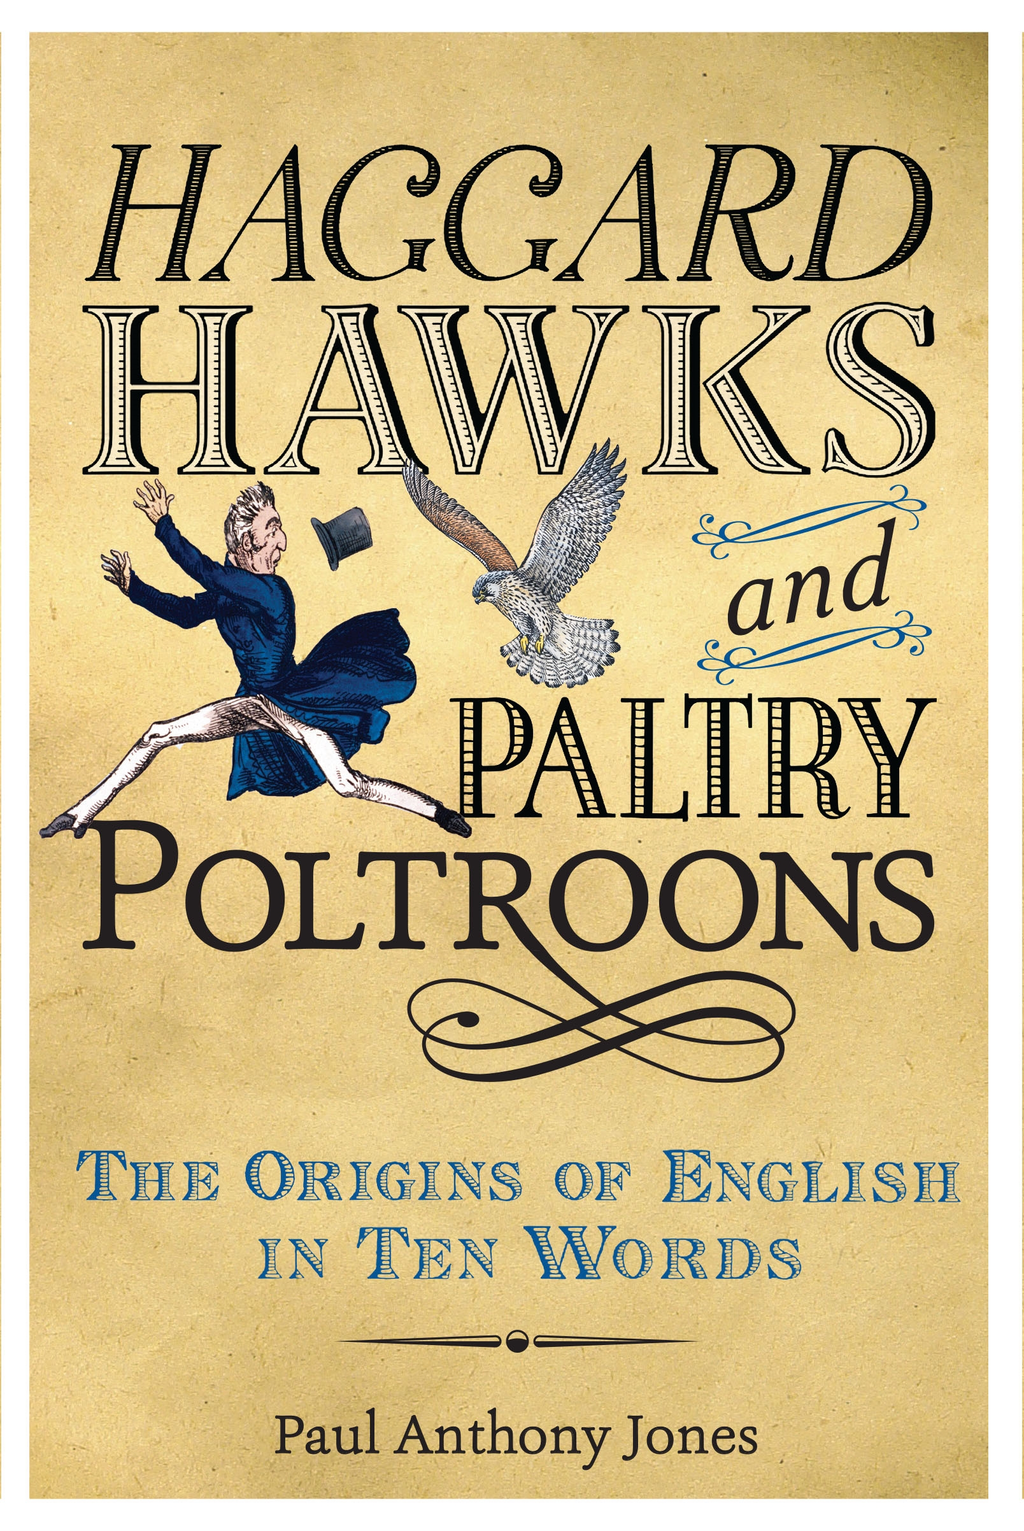 Haggard Hawks and Paltry Poltroons The Origins of English in Ten Words